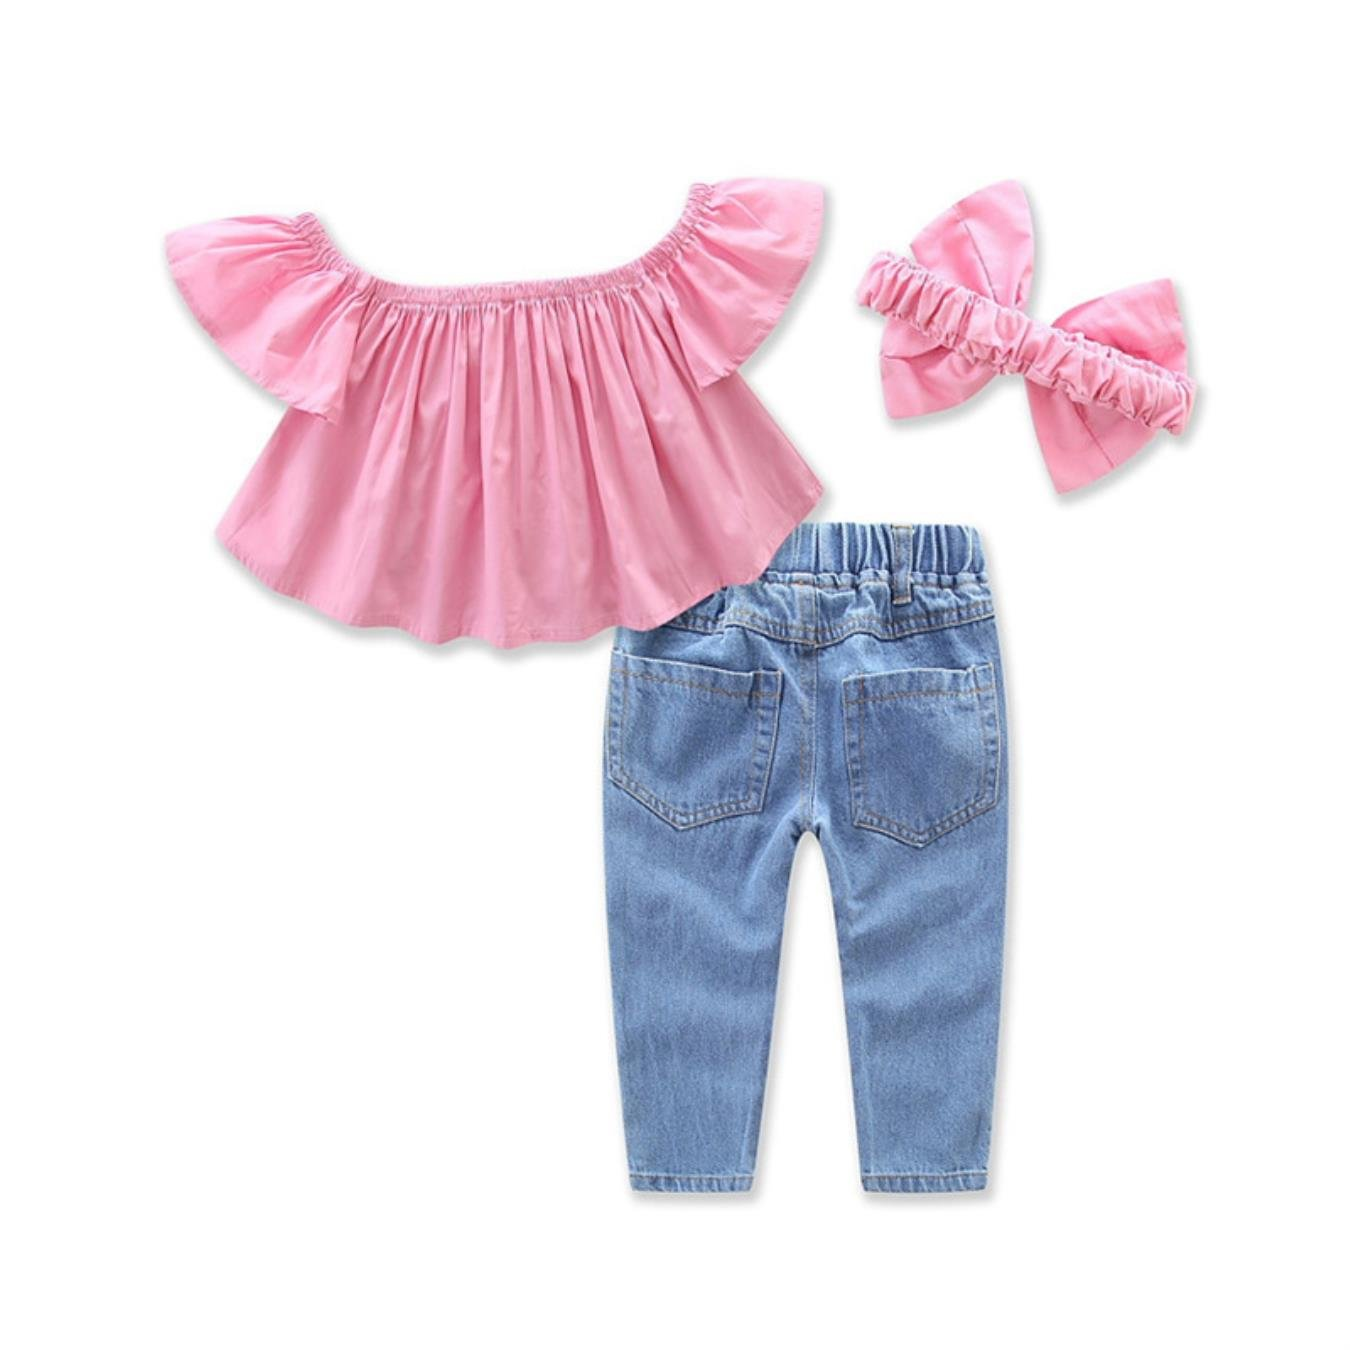 Amazon.com: Girls Clothing Sets Summer Fashion Kids Butterfly Sleeve Shirt+Ripped Jeans+Headband Clohtes Suit: Clothing